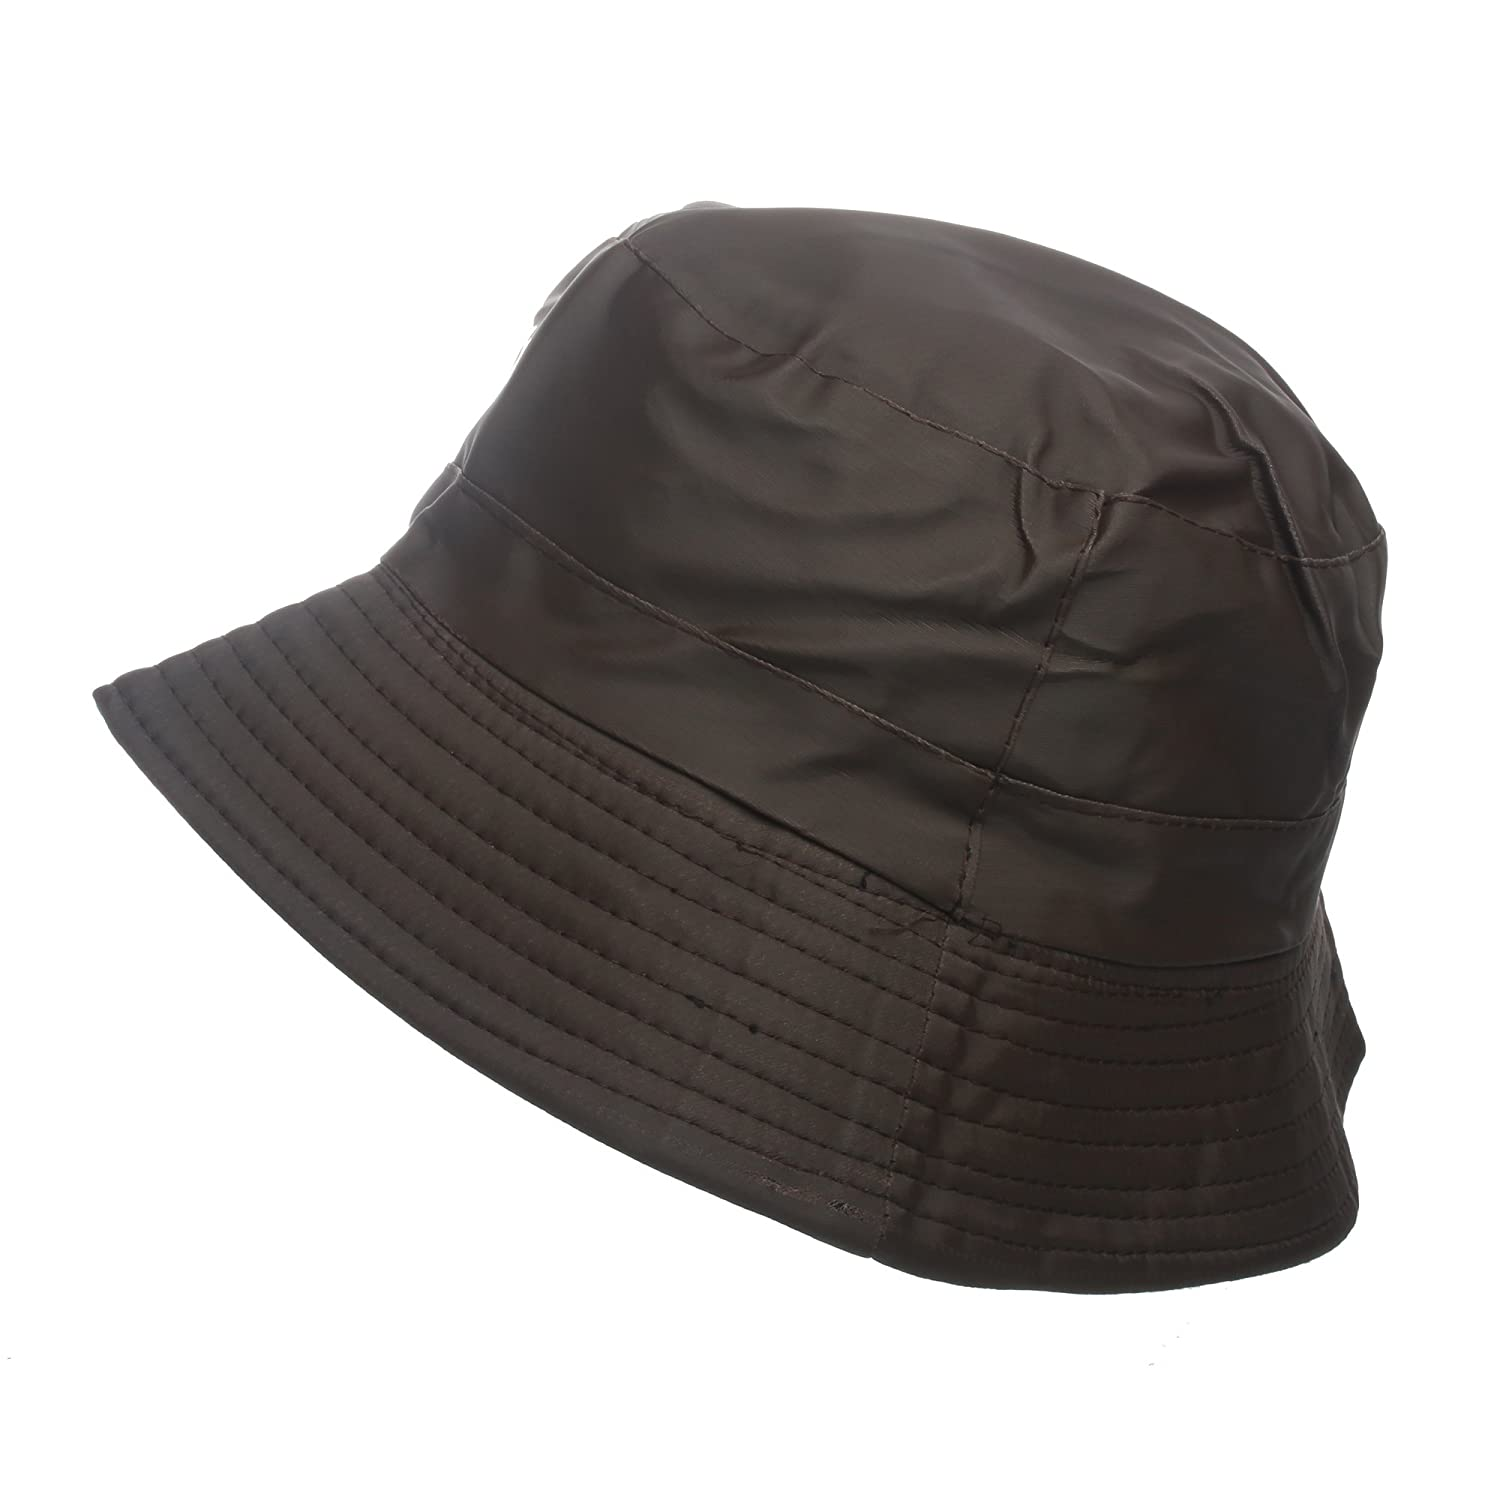 Unisex Plain Outdoor Shower Proof Festival Bucket Hat available in a selection of colours and Sizes